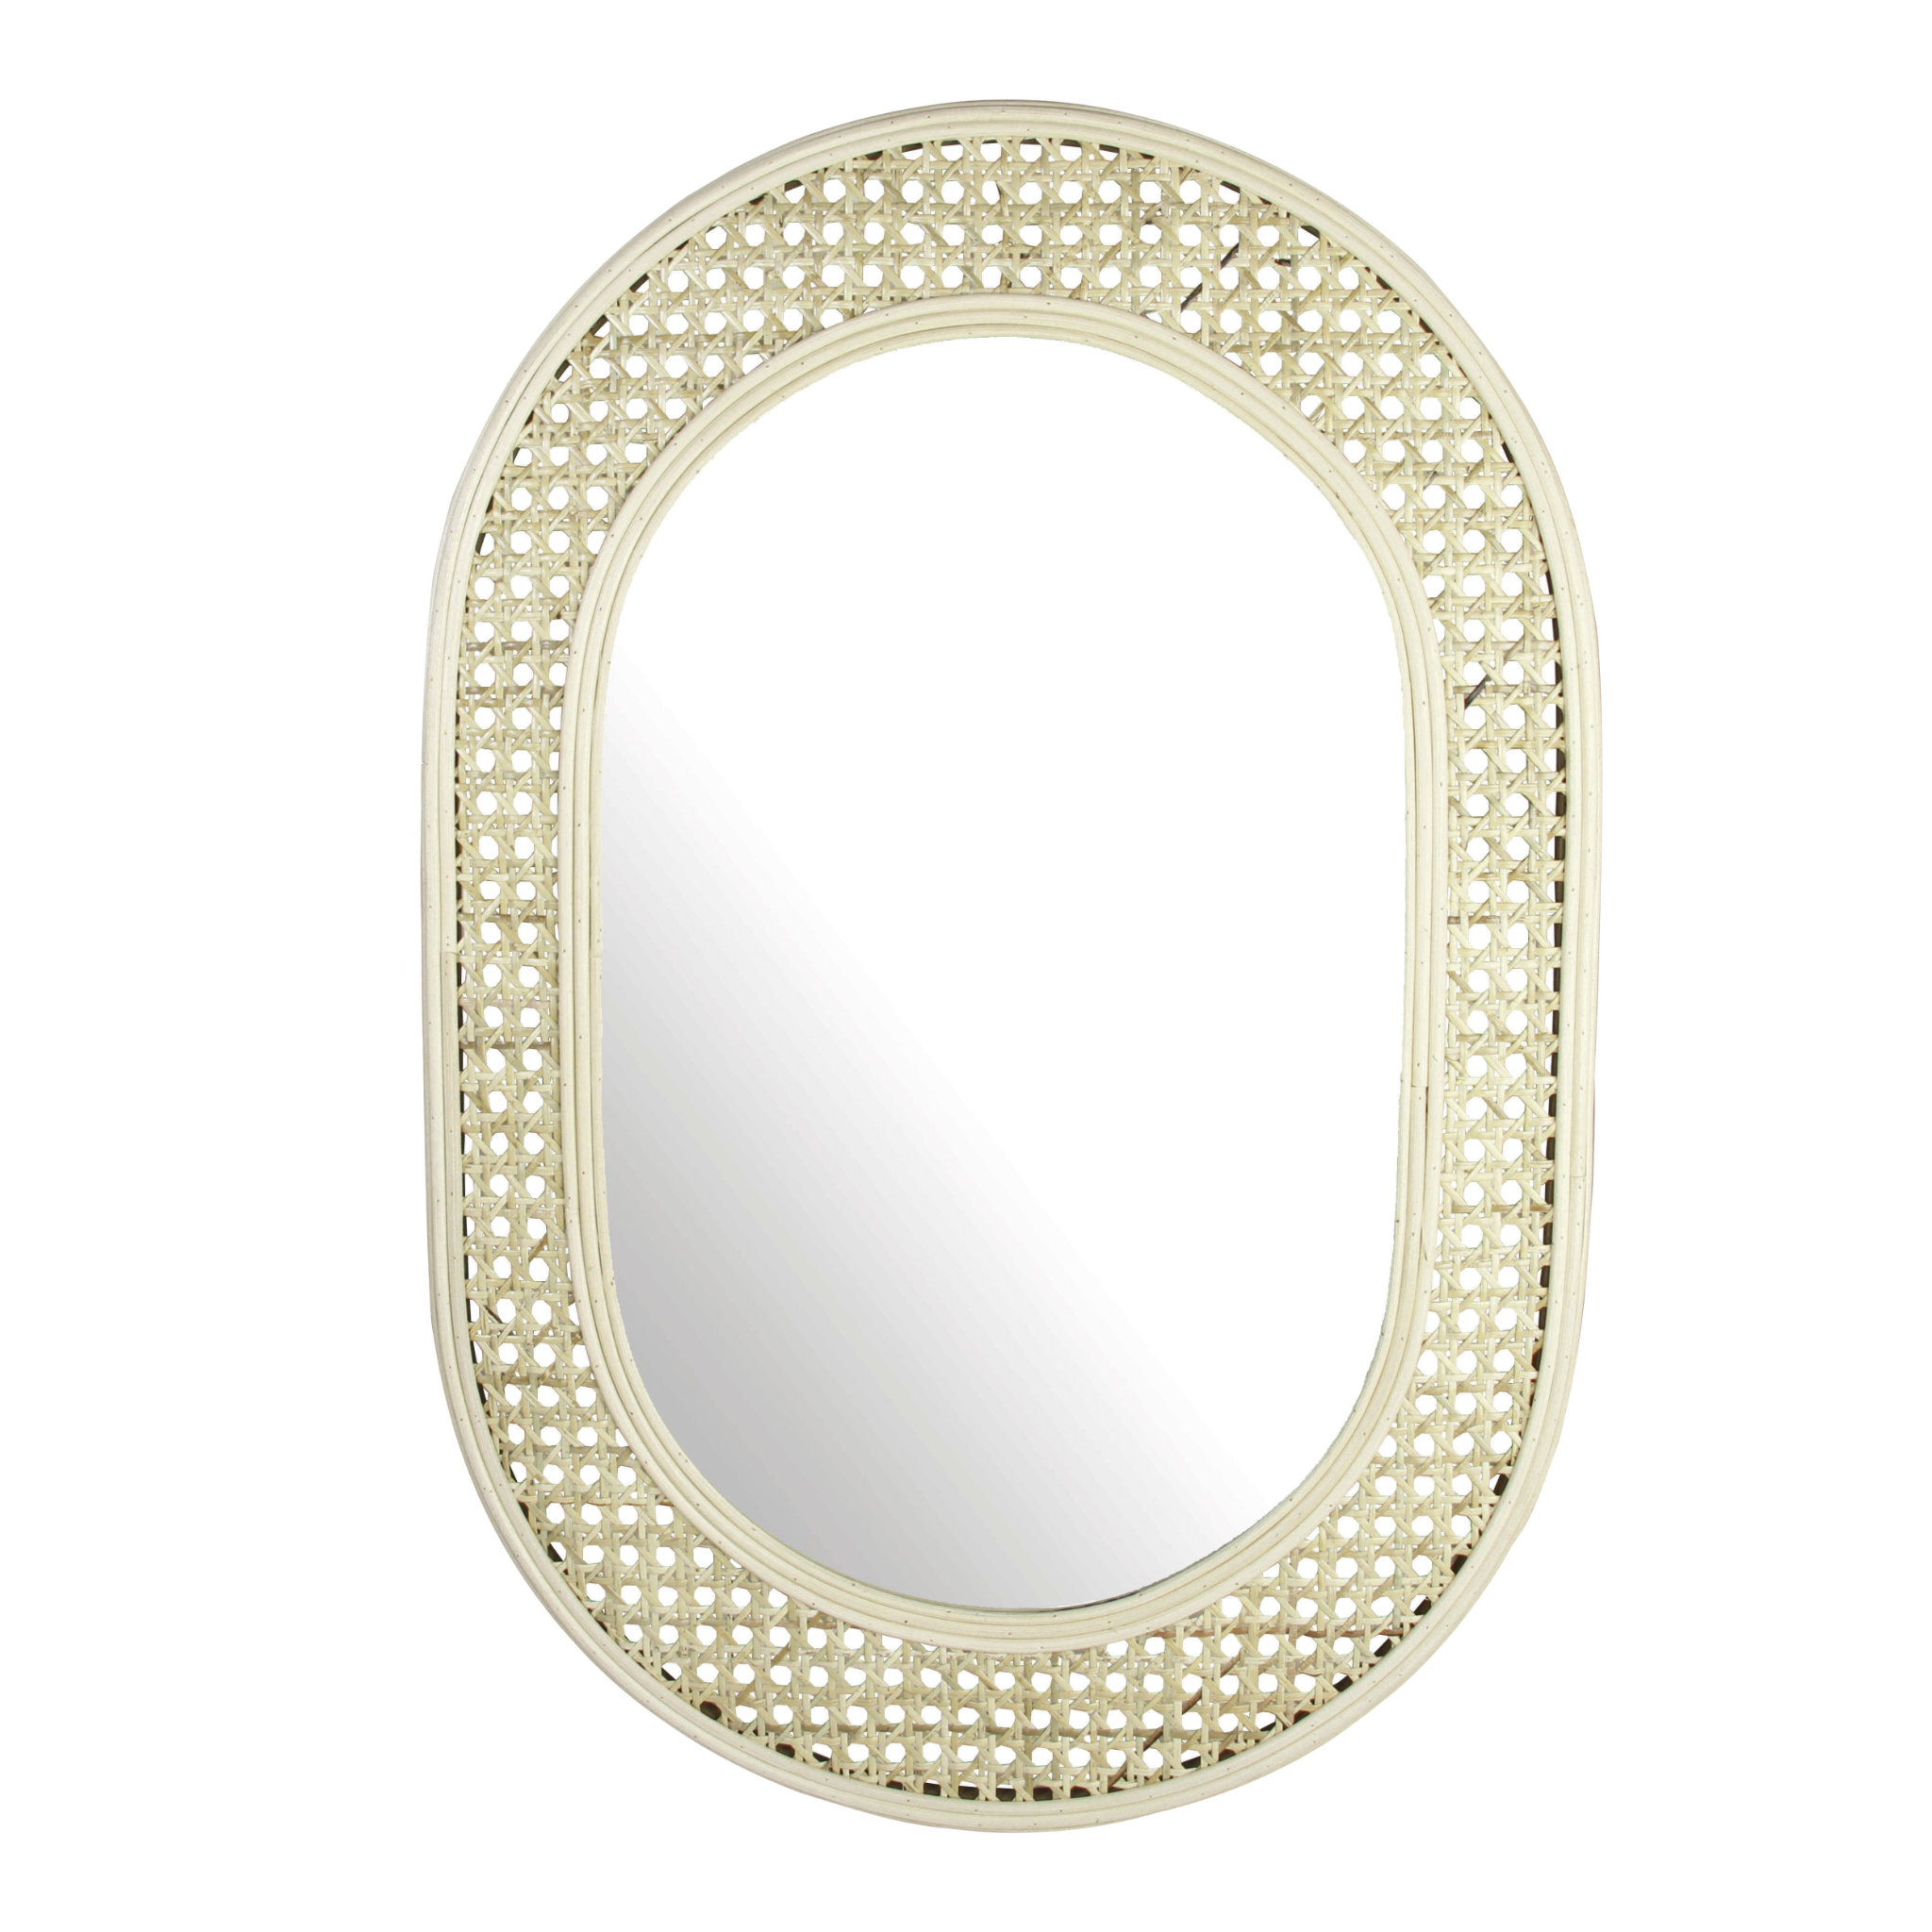 &Klevering Cannage Mirror